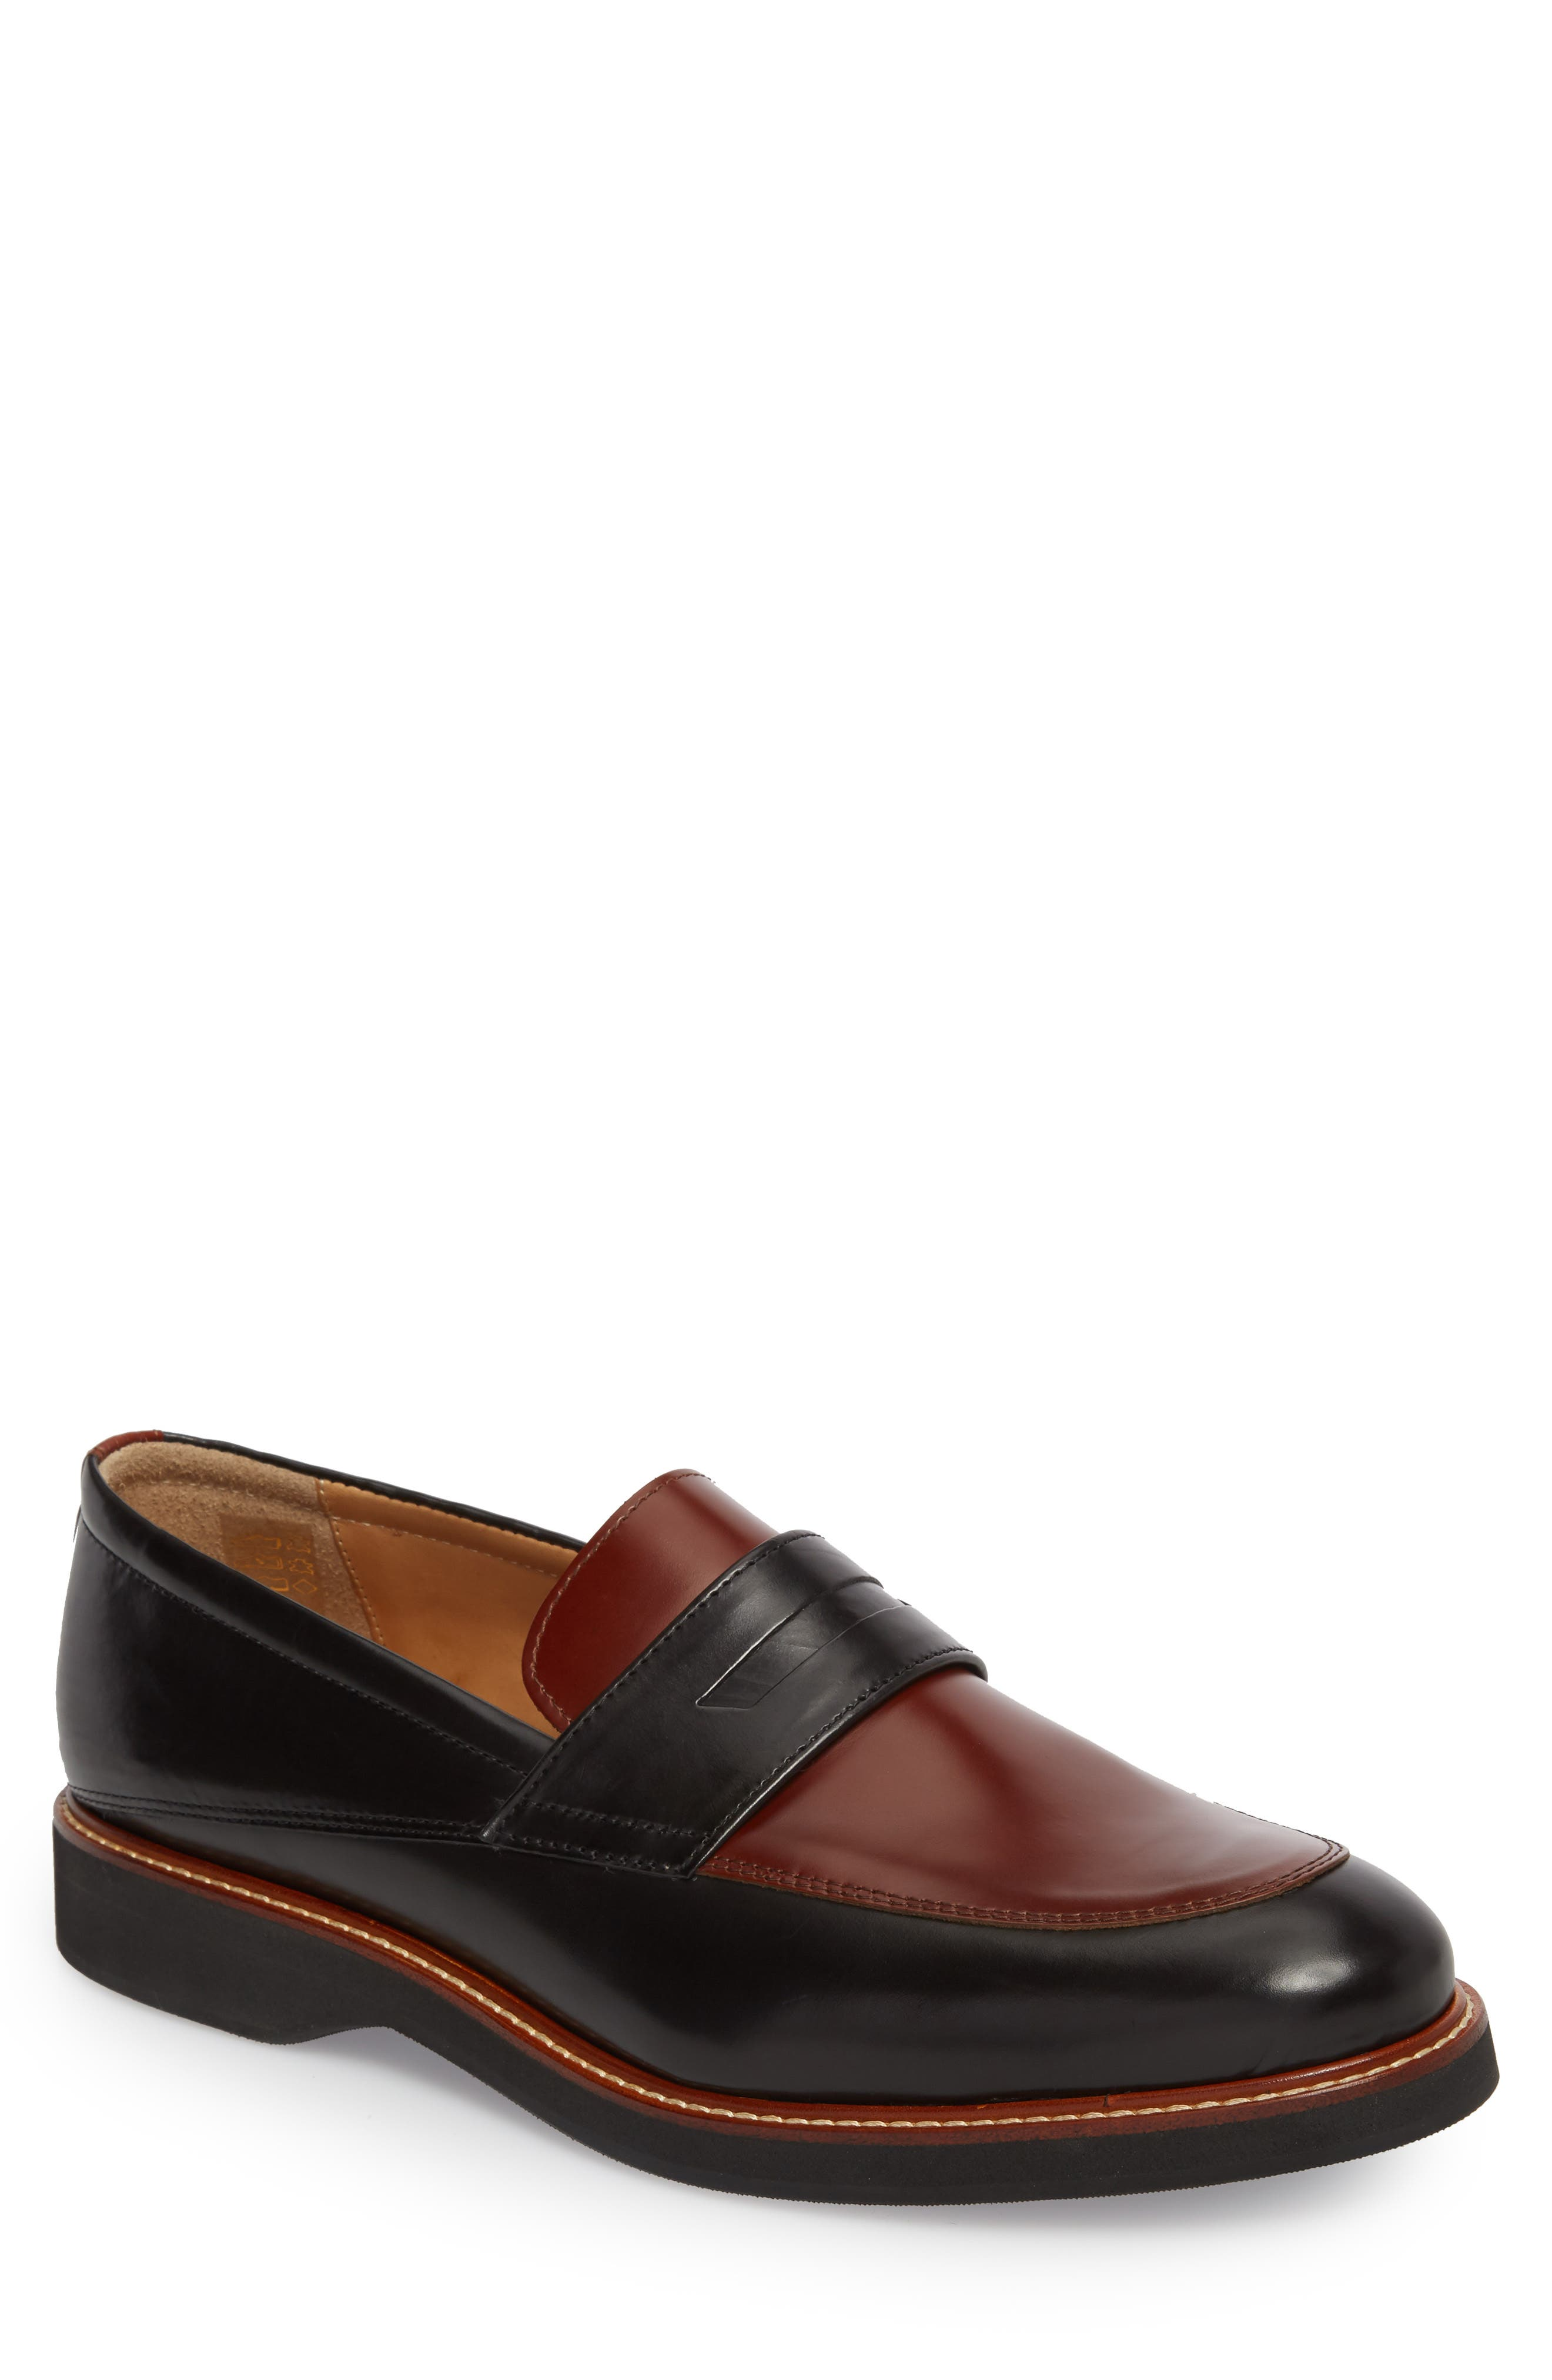 Alternate Image 1 Selected - WANT LES ESSENTIELS Marcus Penny Loafer (Men)